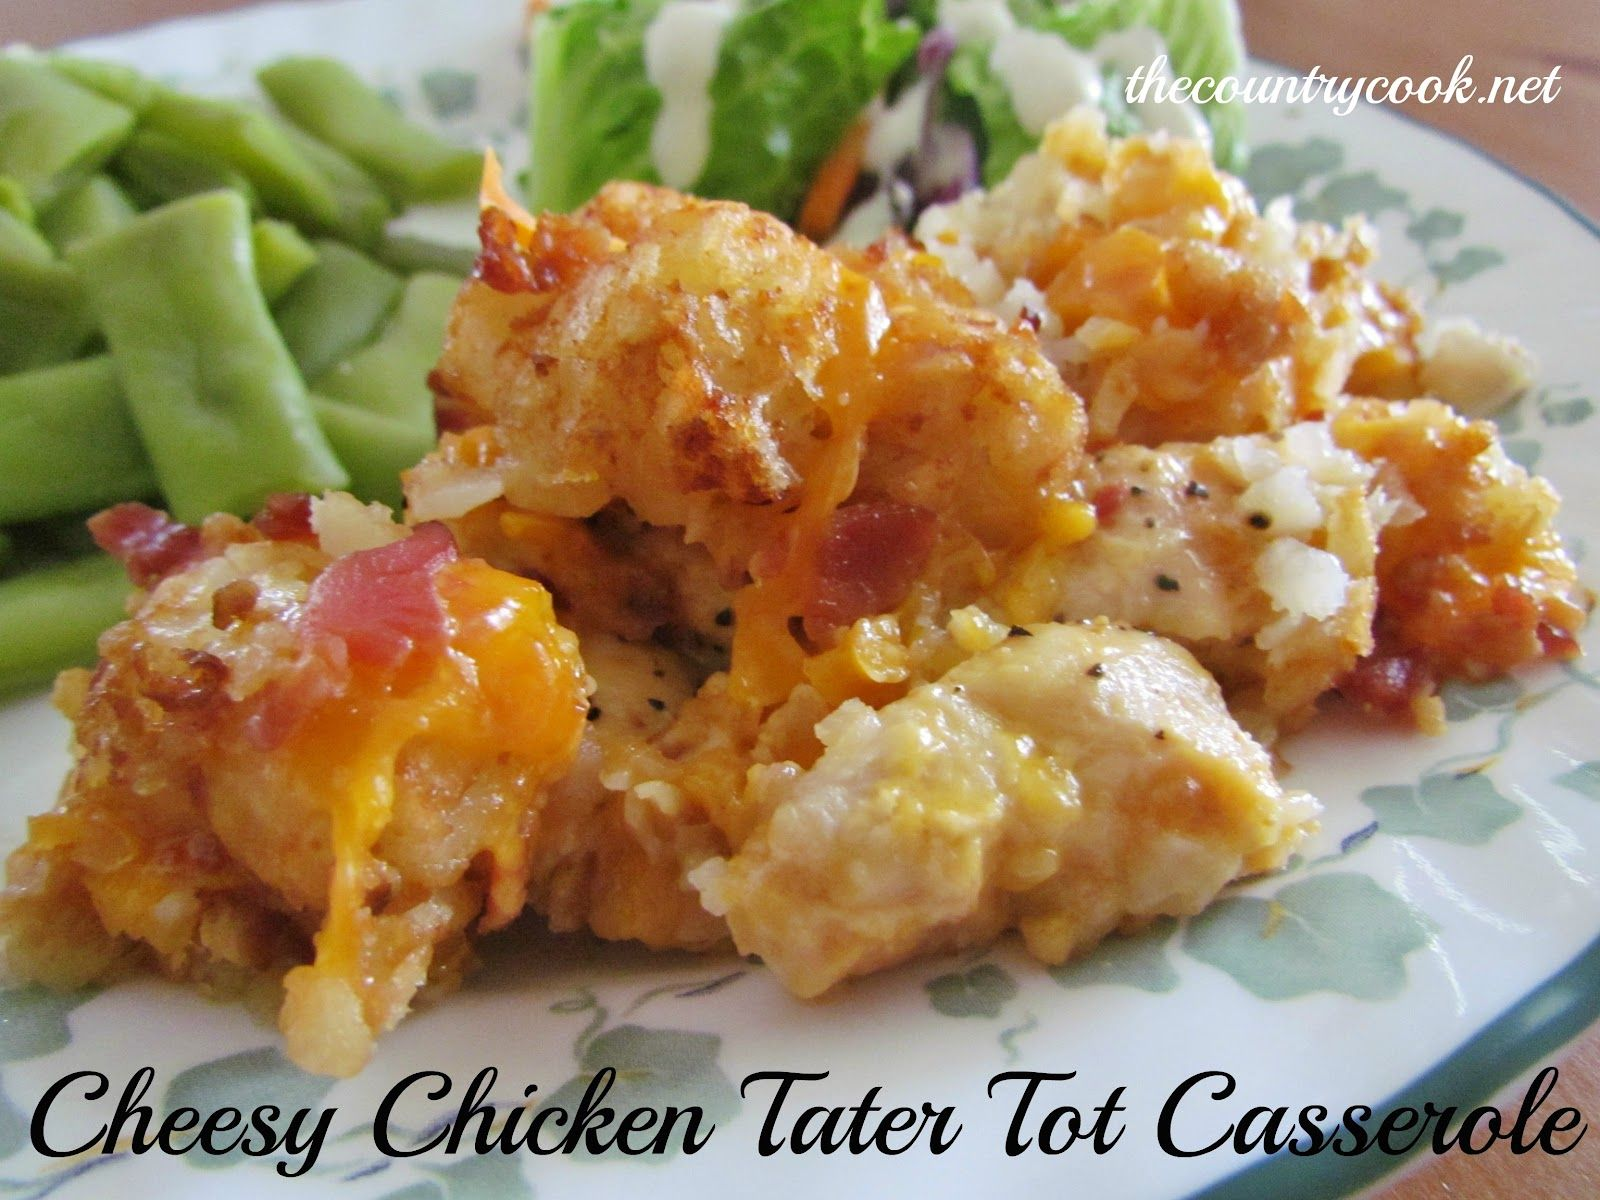 Cheesy Chicken Tater Tot Casserole {Slow Cooker} - My husband will LOVE this.